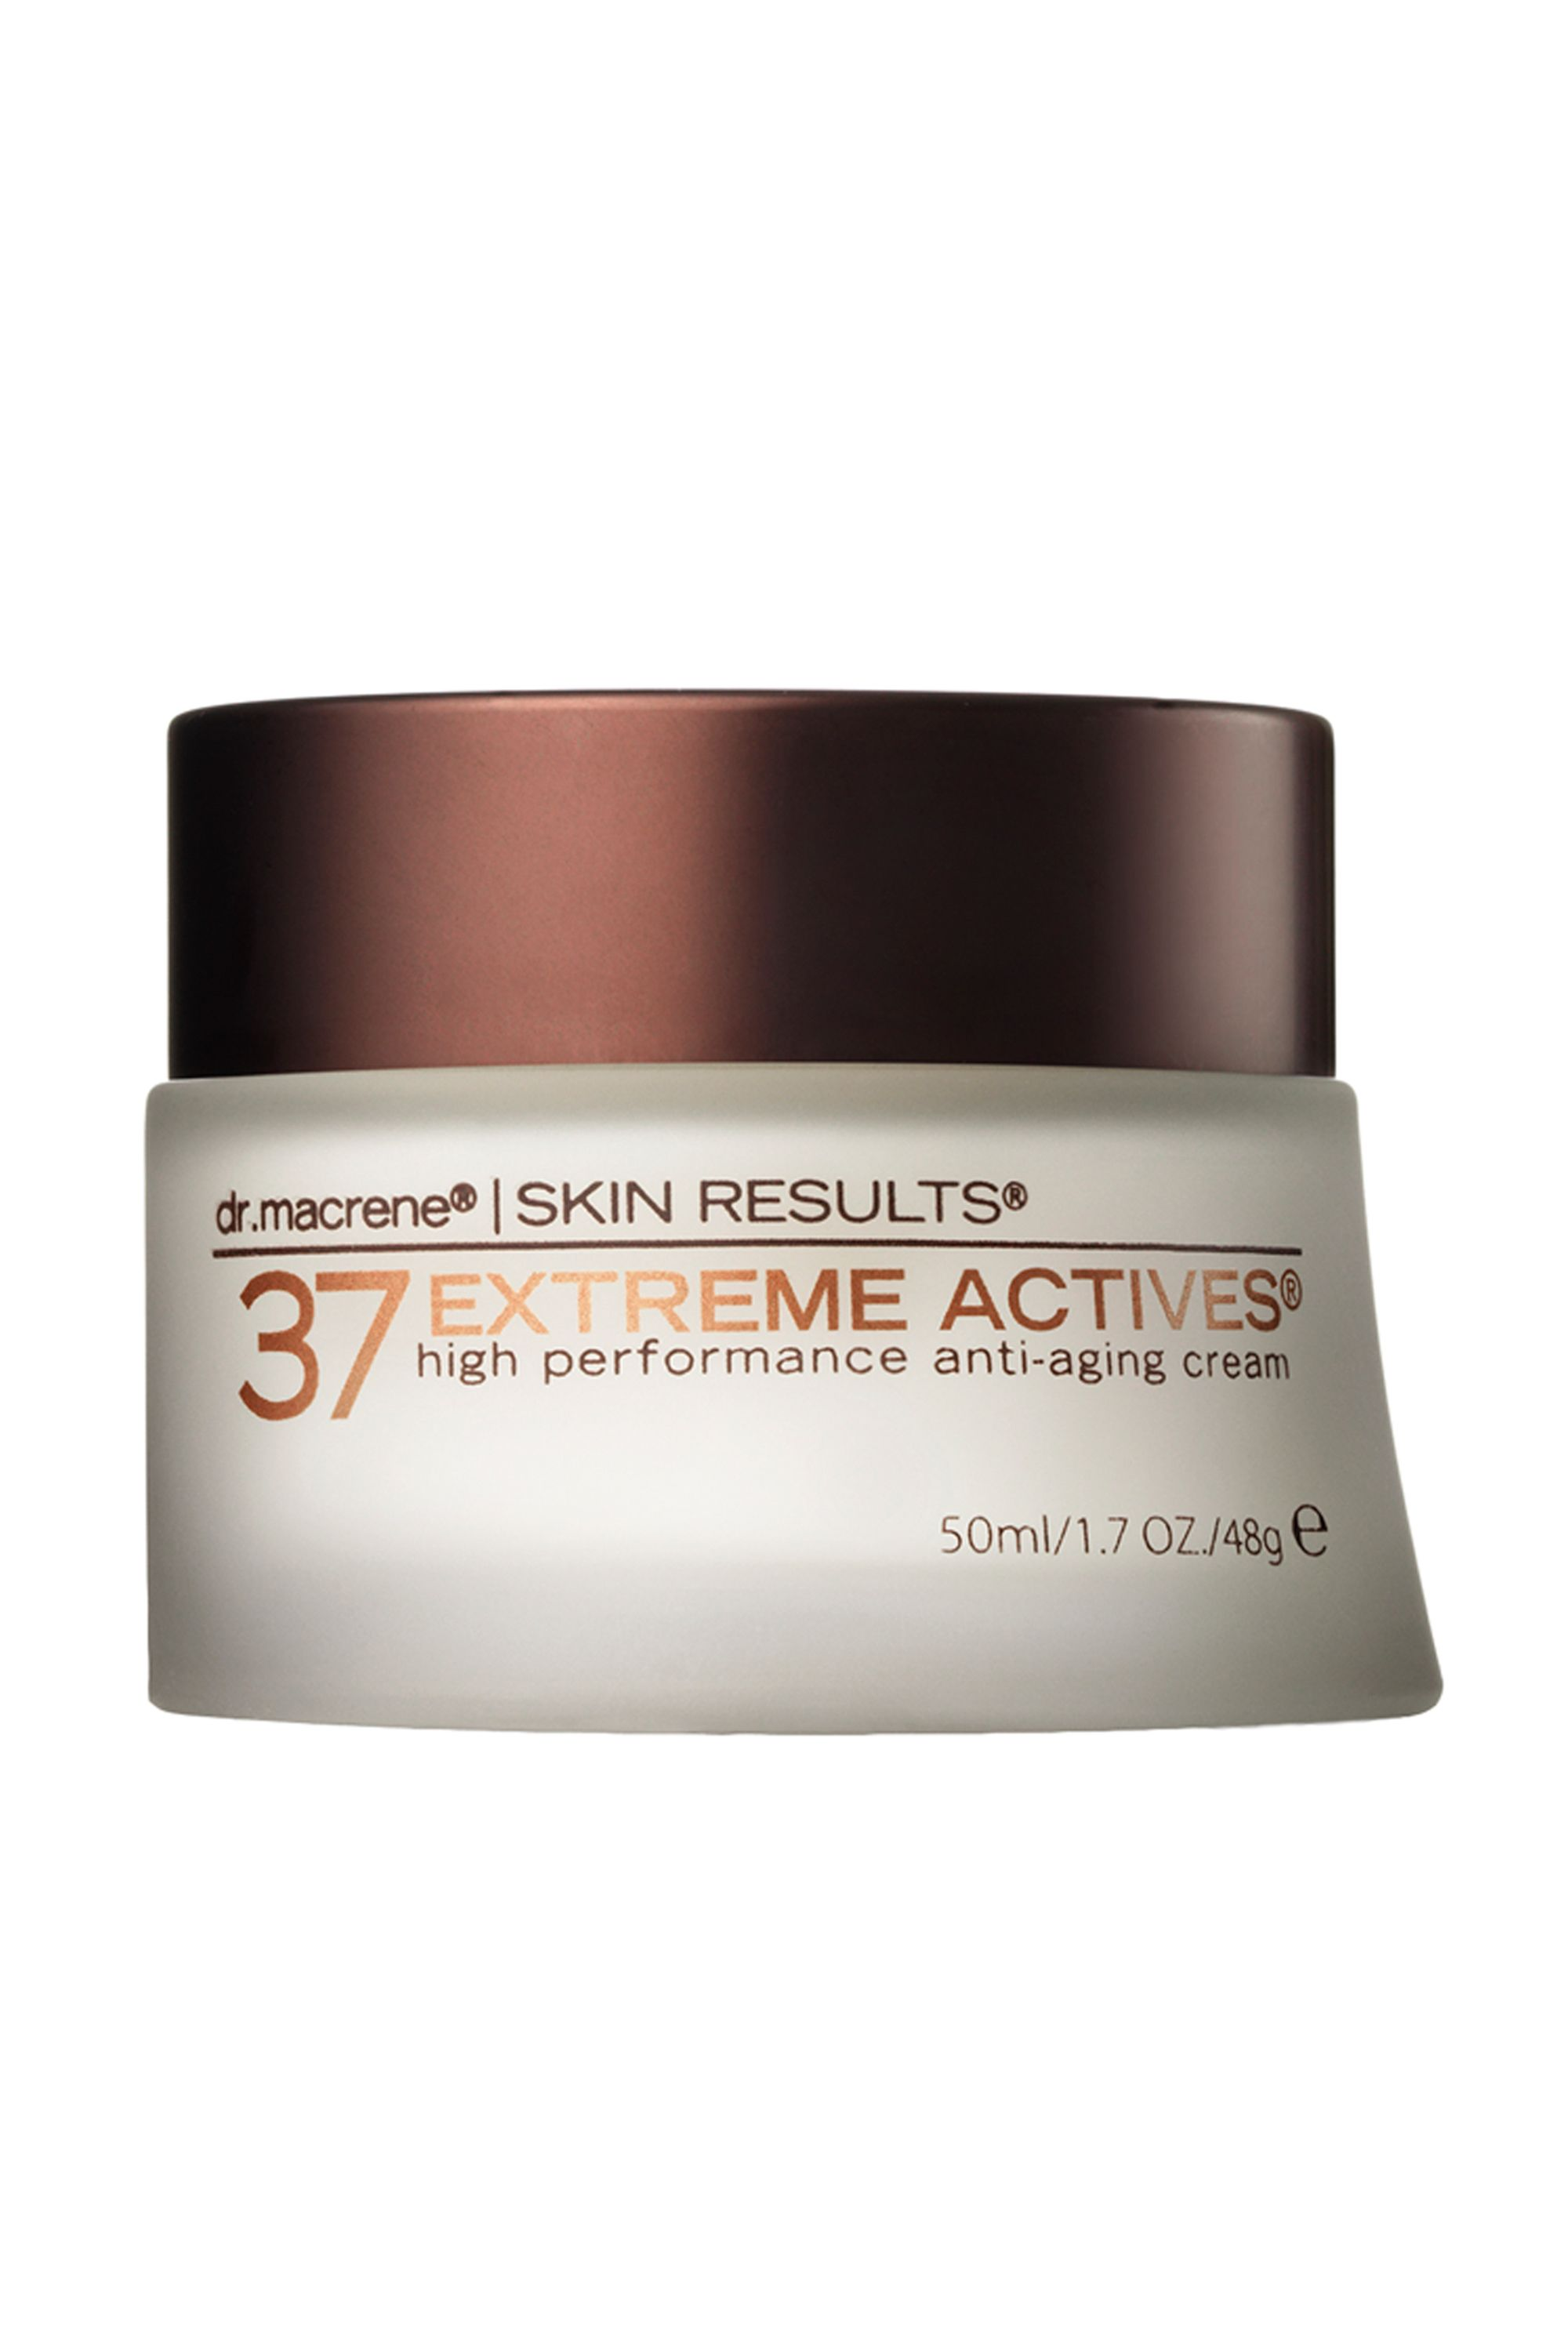 "<p>The first and only wrinkle cream I've ever used, this super potent anti-ager from New York City dermatologist Macrene Alexiades-Armenakas, MD, PhD, FAAD, PC (yes, she has that many degrees) goes on totally invisible and smells like nothing. But don't let the invisible delivery fool you–it really <em>works</em>. And if the price tag burns a little, consider the fact that Macrene's ingredients (including hyaluronic acid and peptides) remain active for up to two years.  —Leah Chernikoff, Editorial Director</p><p><i>37 Actives High Performance Anti-Aging Cream, $295; <a href=""http://m.skinstore.com/37-actives-high-performance-anti-aging-cream/11285958.html"" target=""_blank"">skinstore.com</a></i></p>"